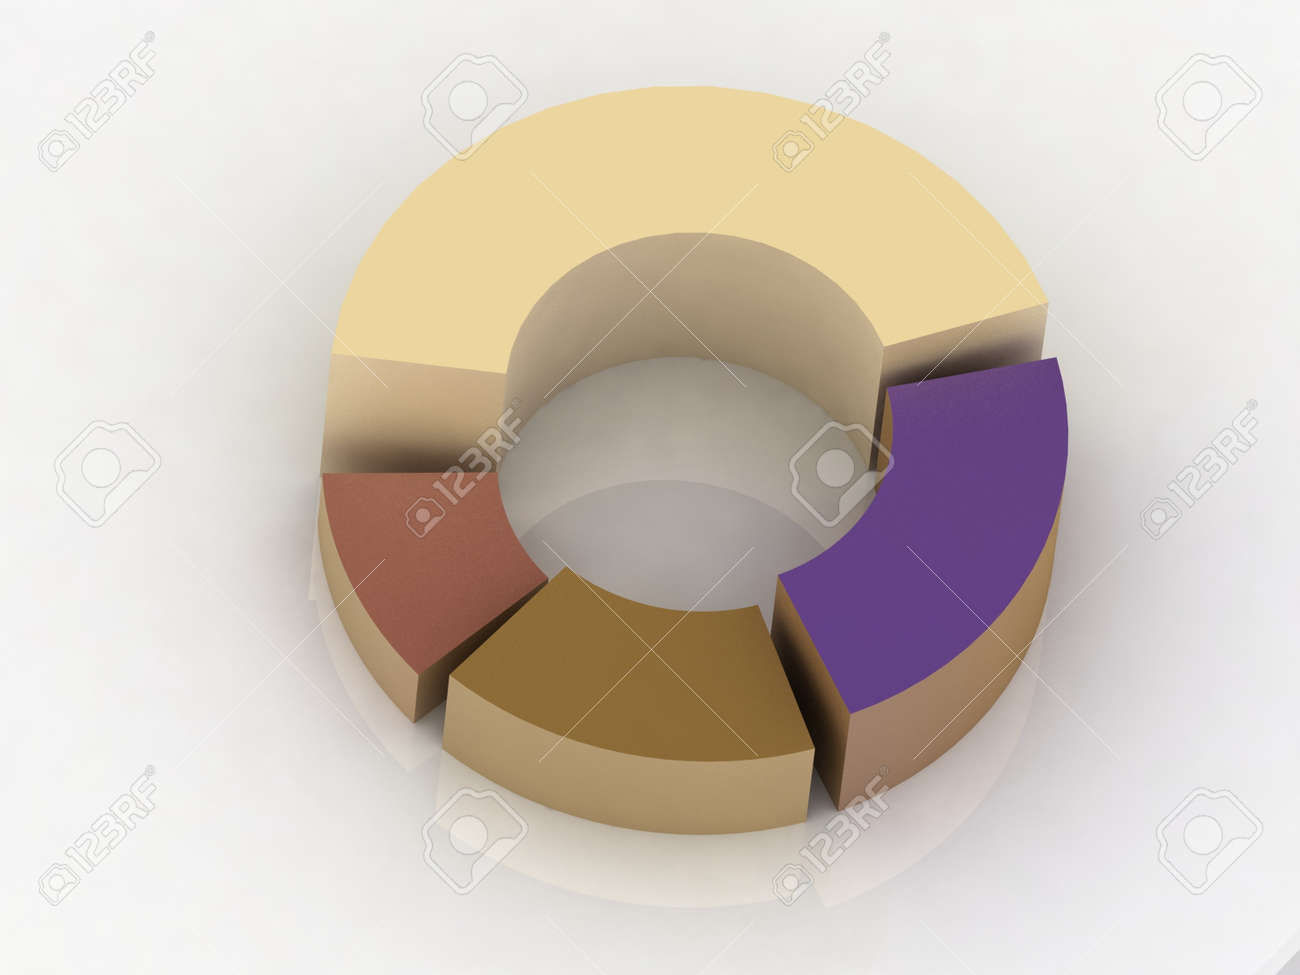 hight resolution of 3d circular diagram on white background stock photo 11946401